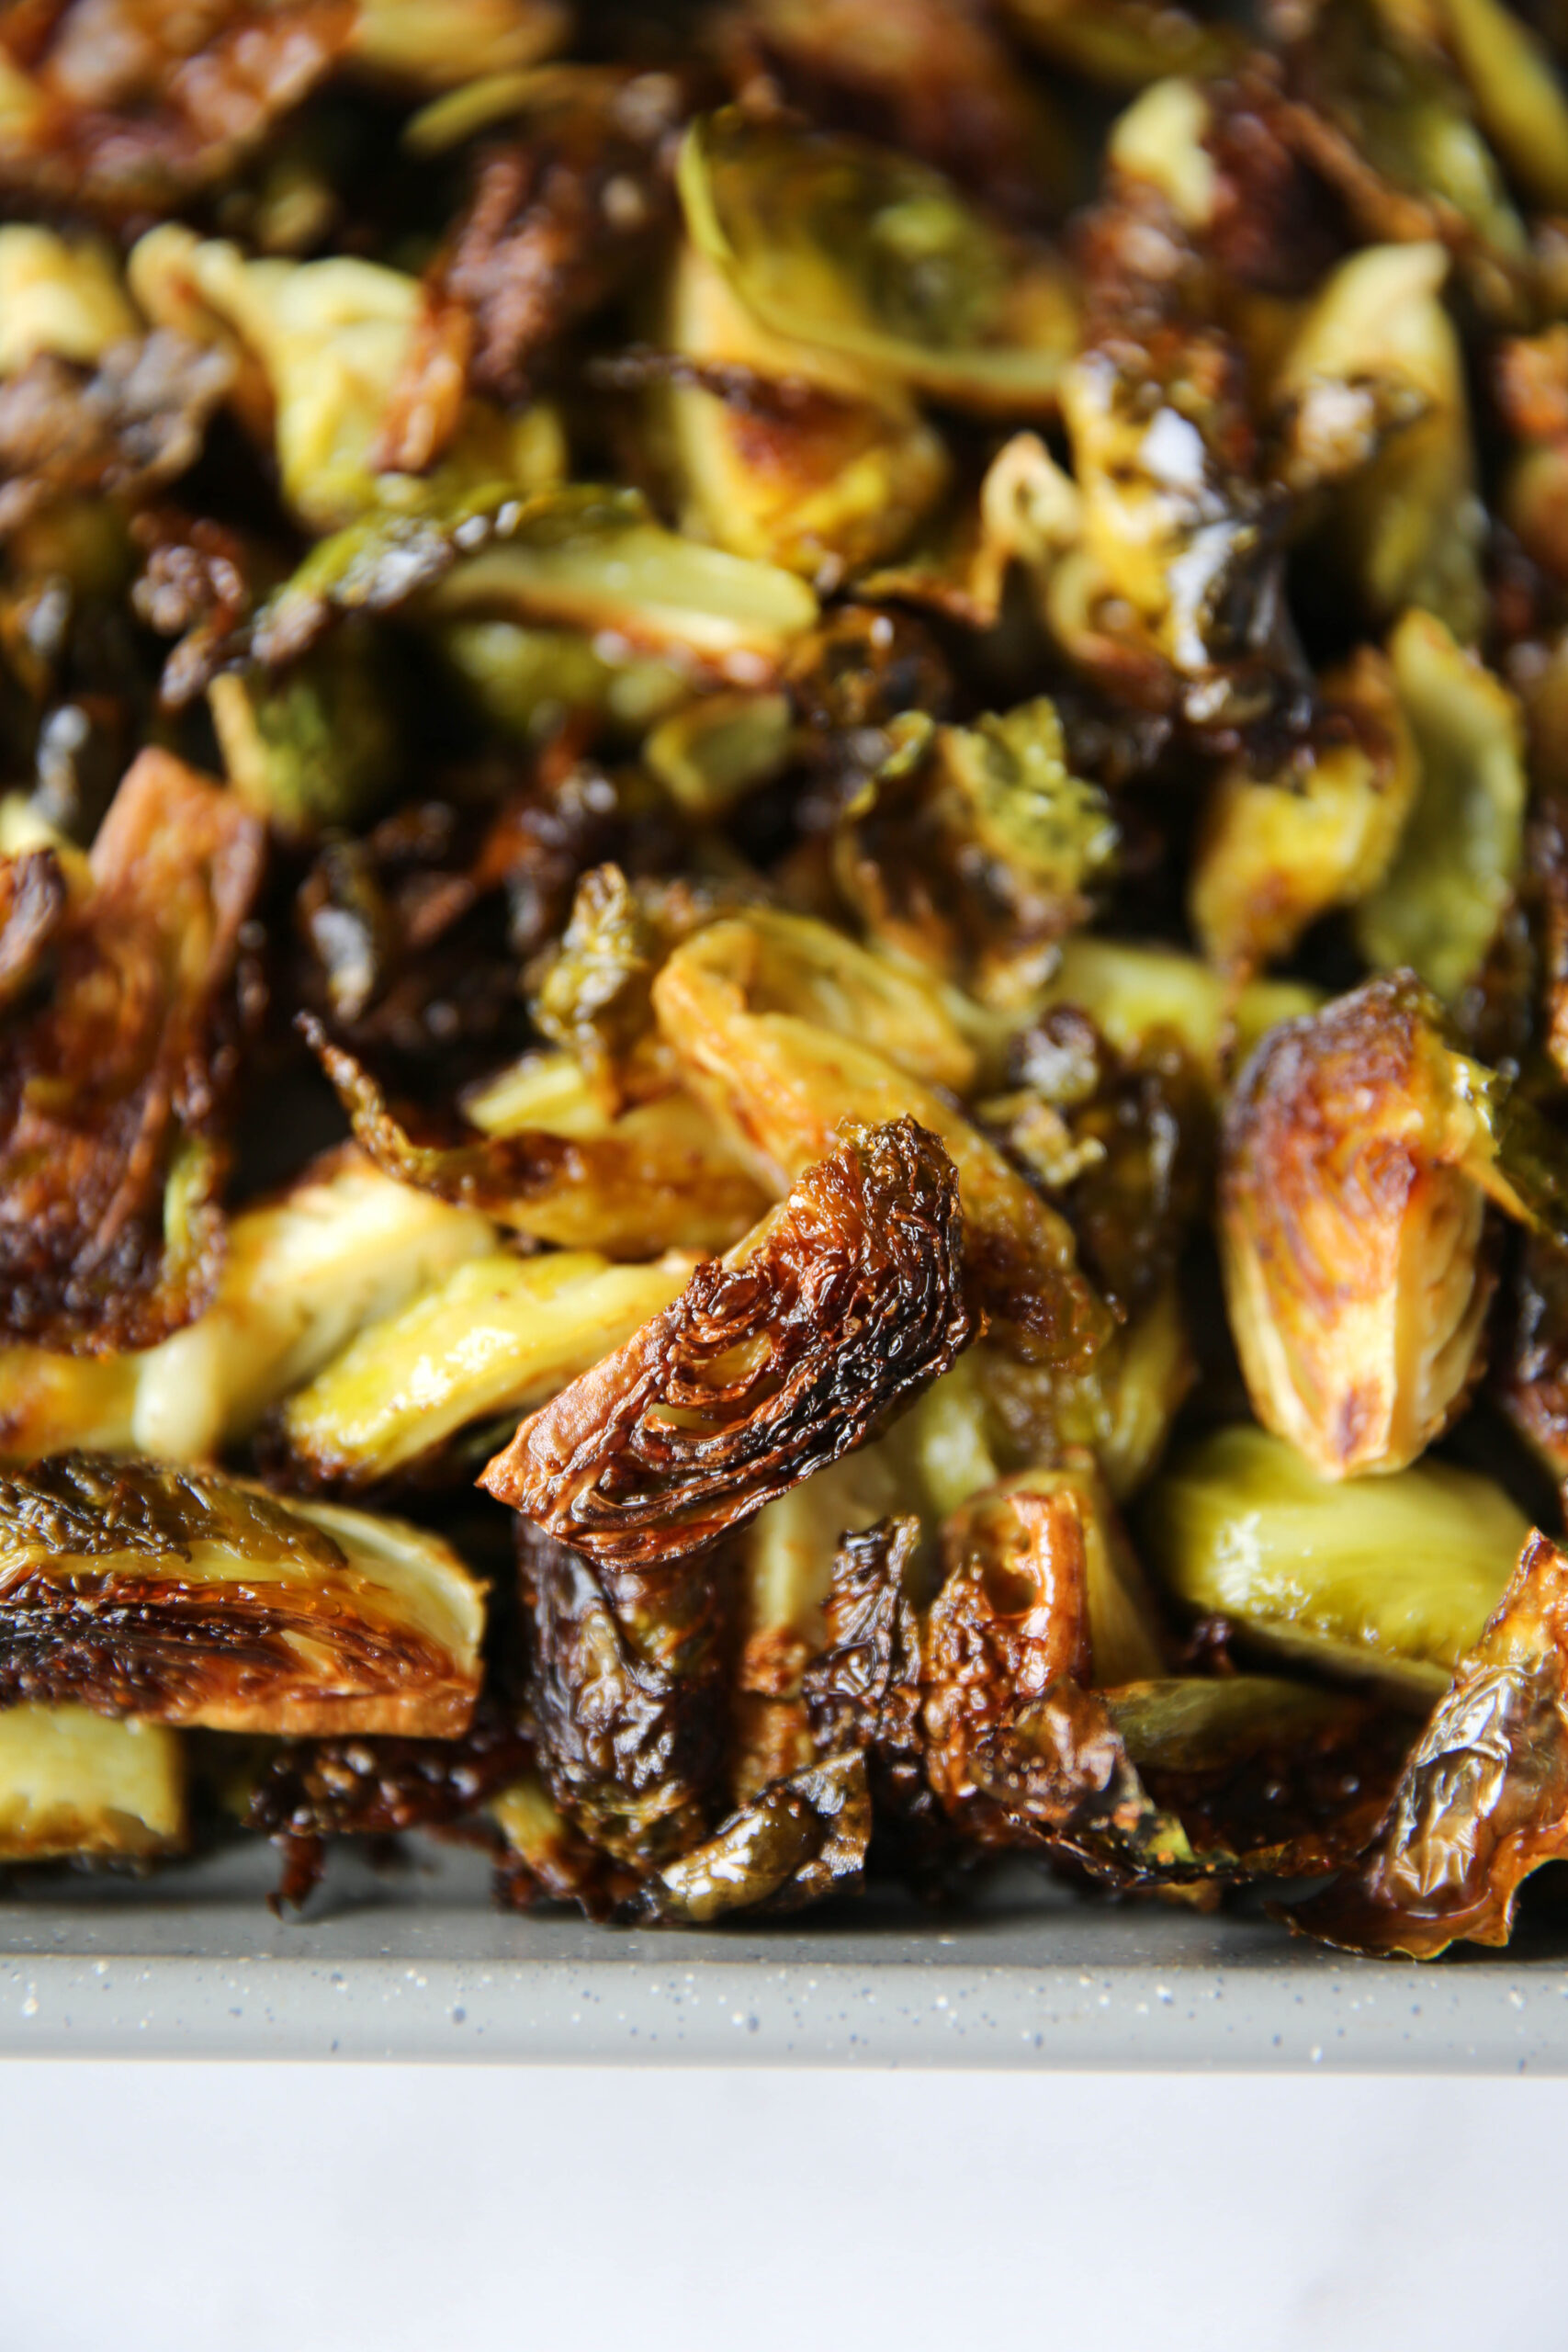 PaleOMG Back to Basics: Roasted Brussels Sprouts